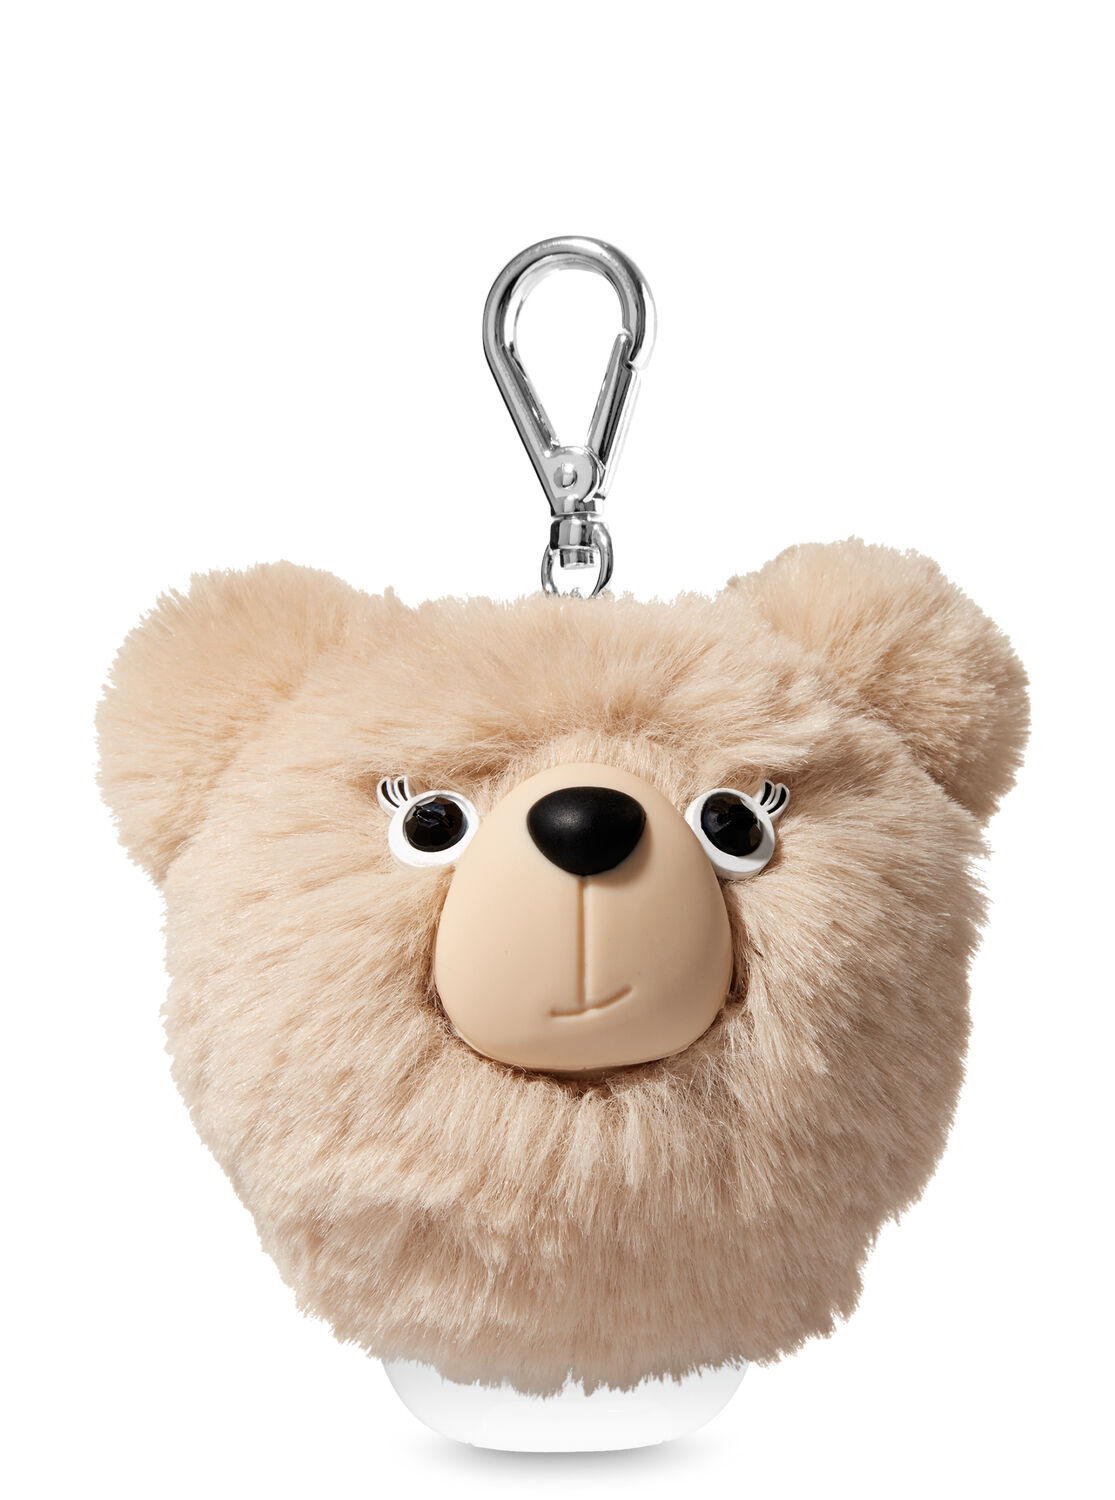 Are Search sweet bear redirect apologise